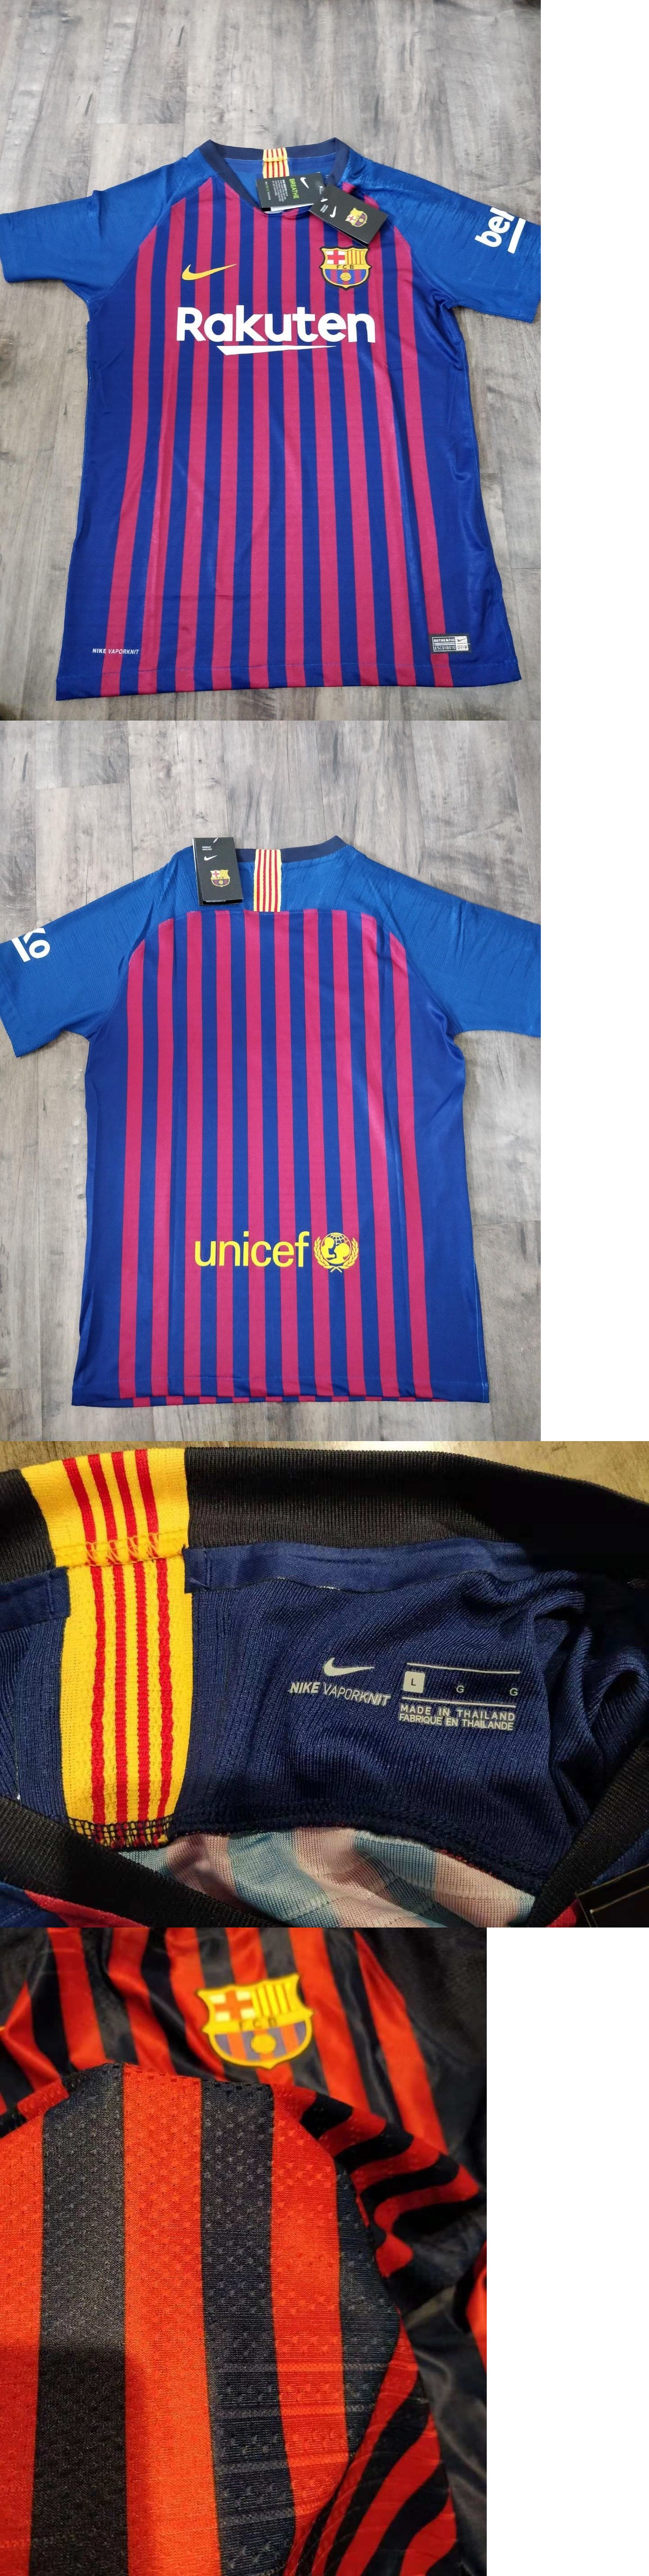 Clothing 33485  2018 19 Fc Barcelona Authentic Vapor Match Home Jersey  Player Version Size L -  BUY IT NOW ONLY   60 on  eBay  clothing  barcelona  ... 1b038ac75